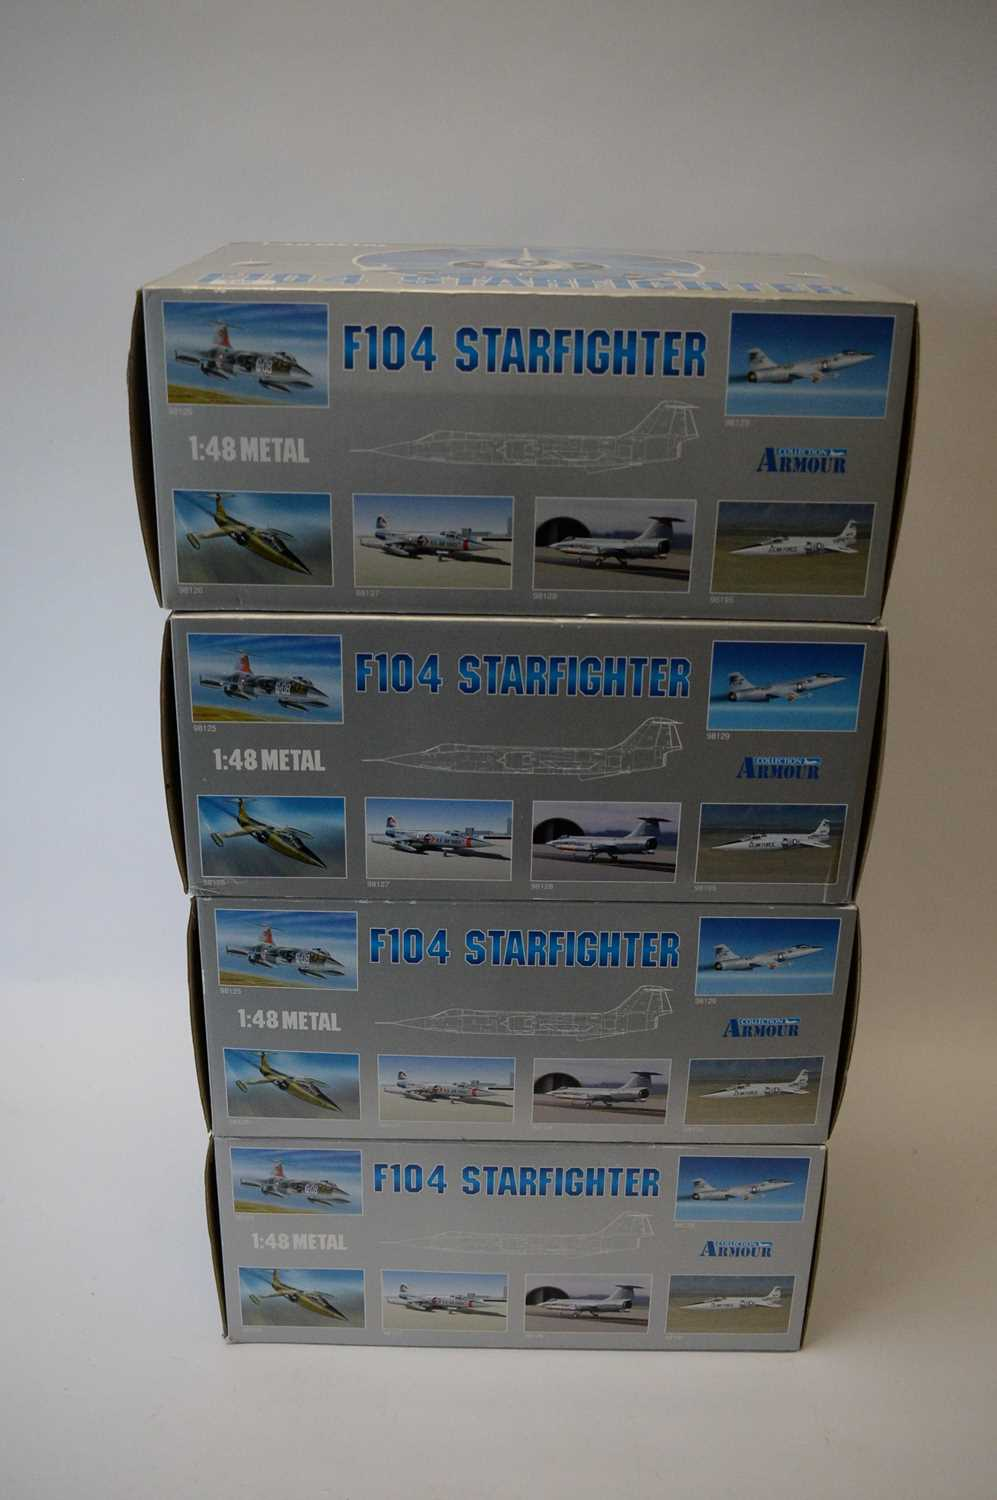 Lot 799 - Collection Armour 1:48 Scale metal diecast aeroplanes - F104 Starfighter.